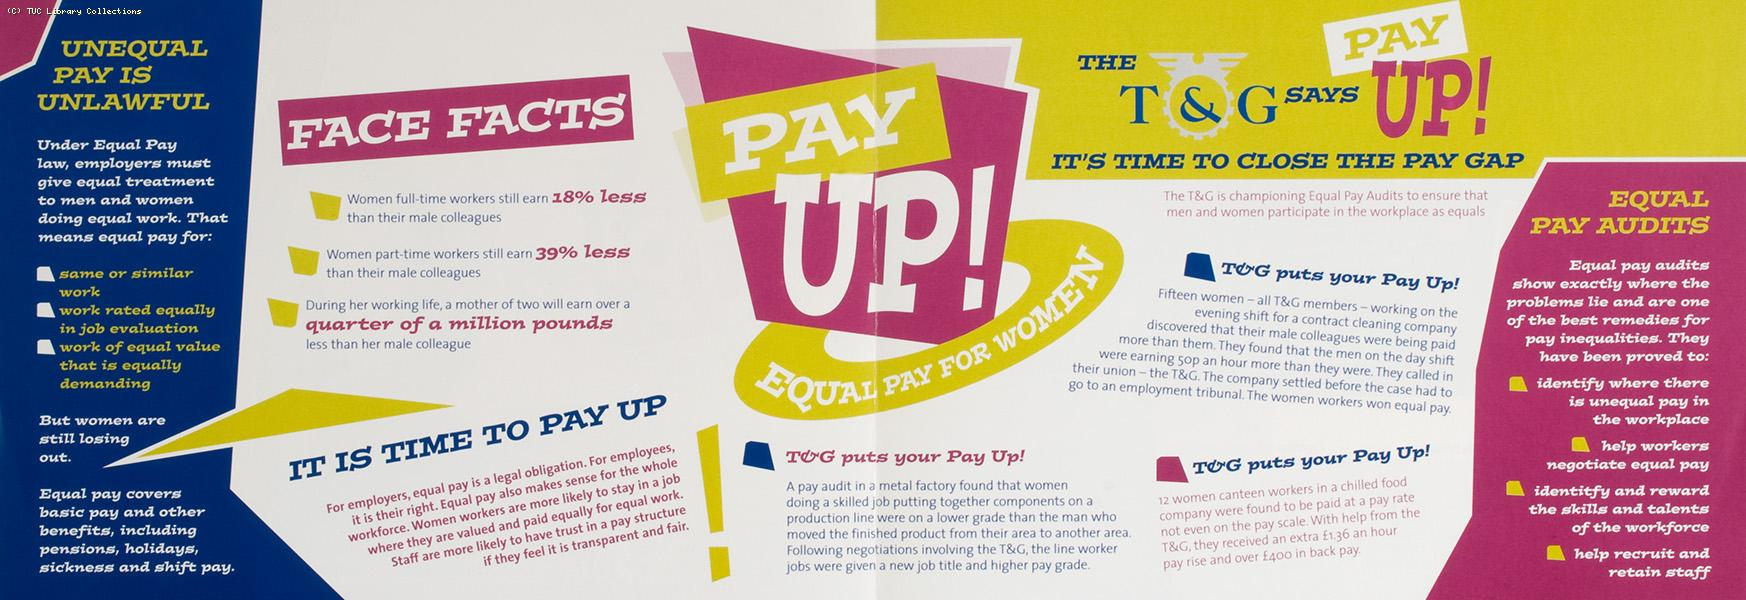 Pay up! Equal pay for women - TGWU leaflet, 2002